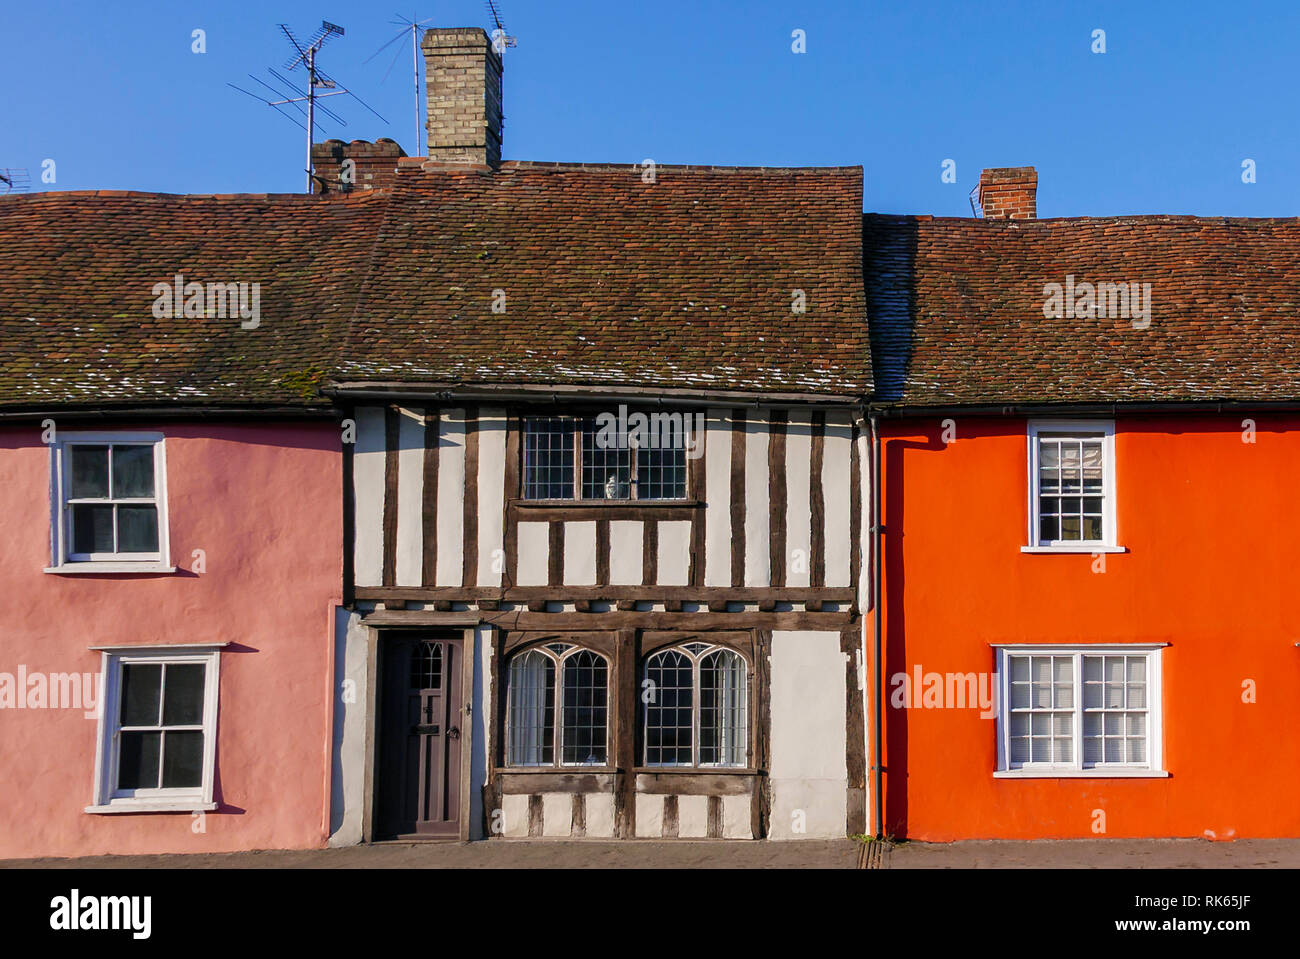 20-01-19. Thaxted, Essex, England,UK. Colourful, colorful, medieval architecture on Newbiggin Street. Photo: © Simon Grosset - Stock Image